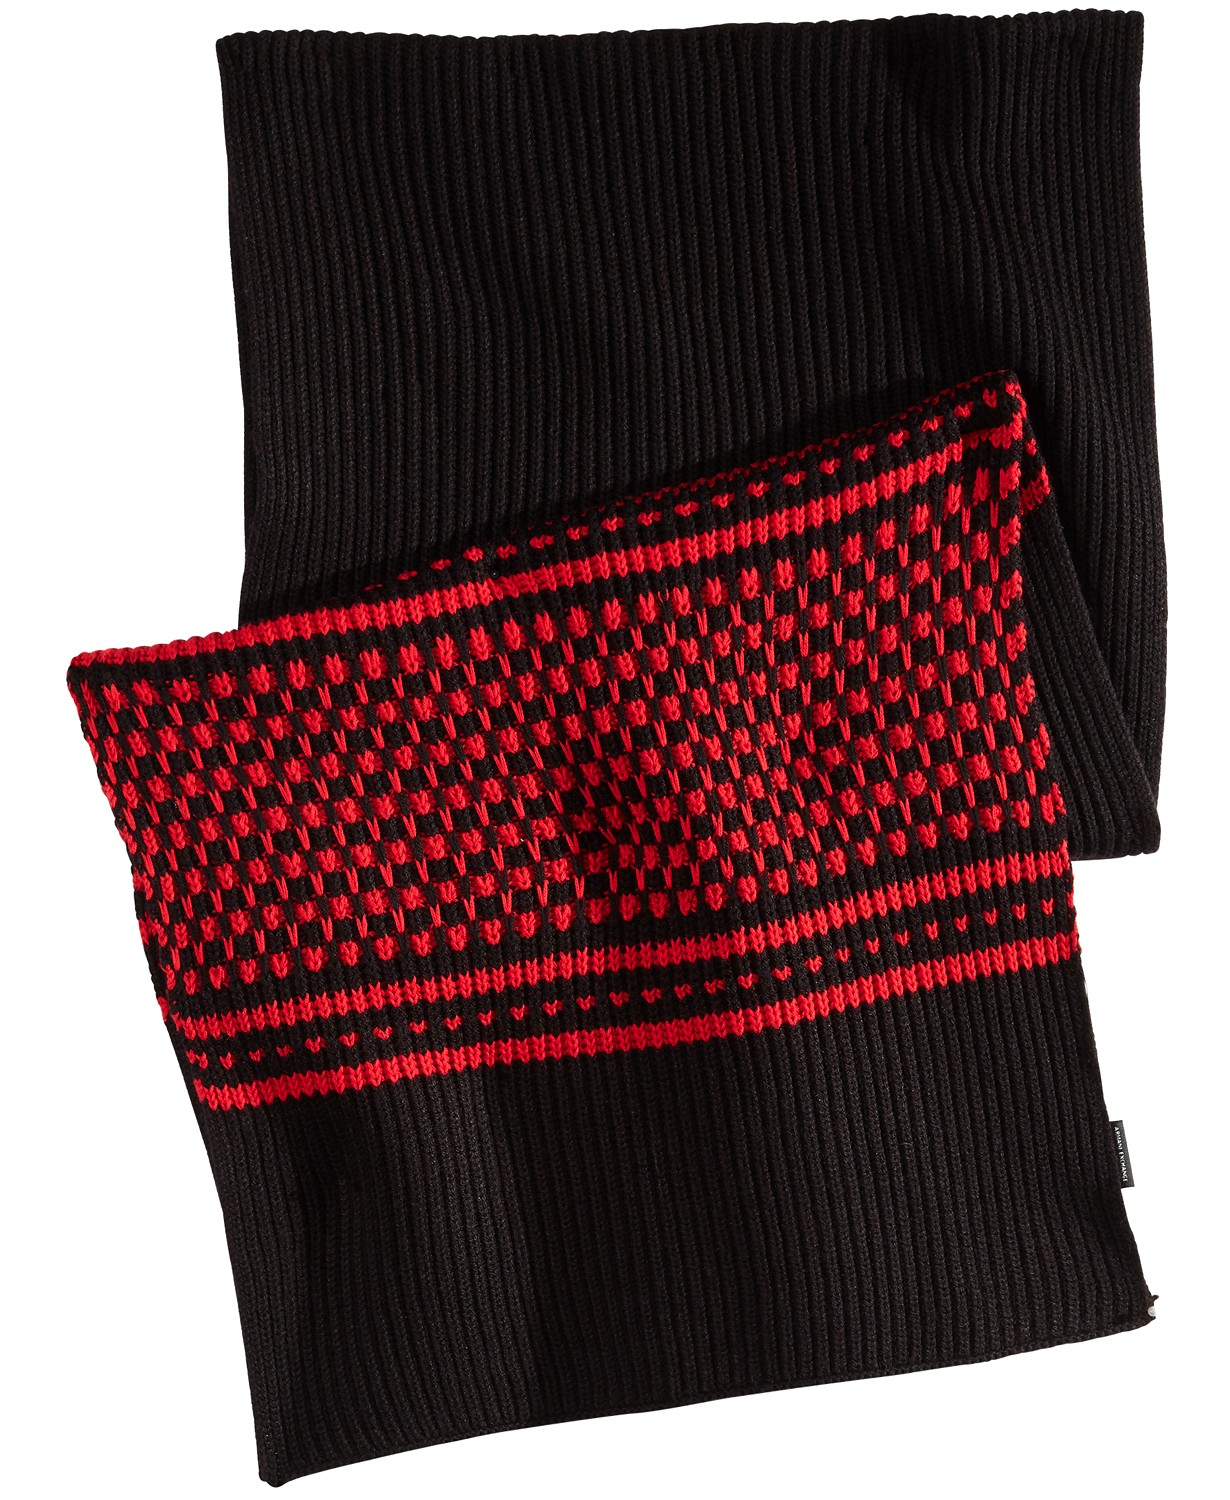 Red and black Armani Exchange scarf.